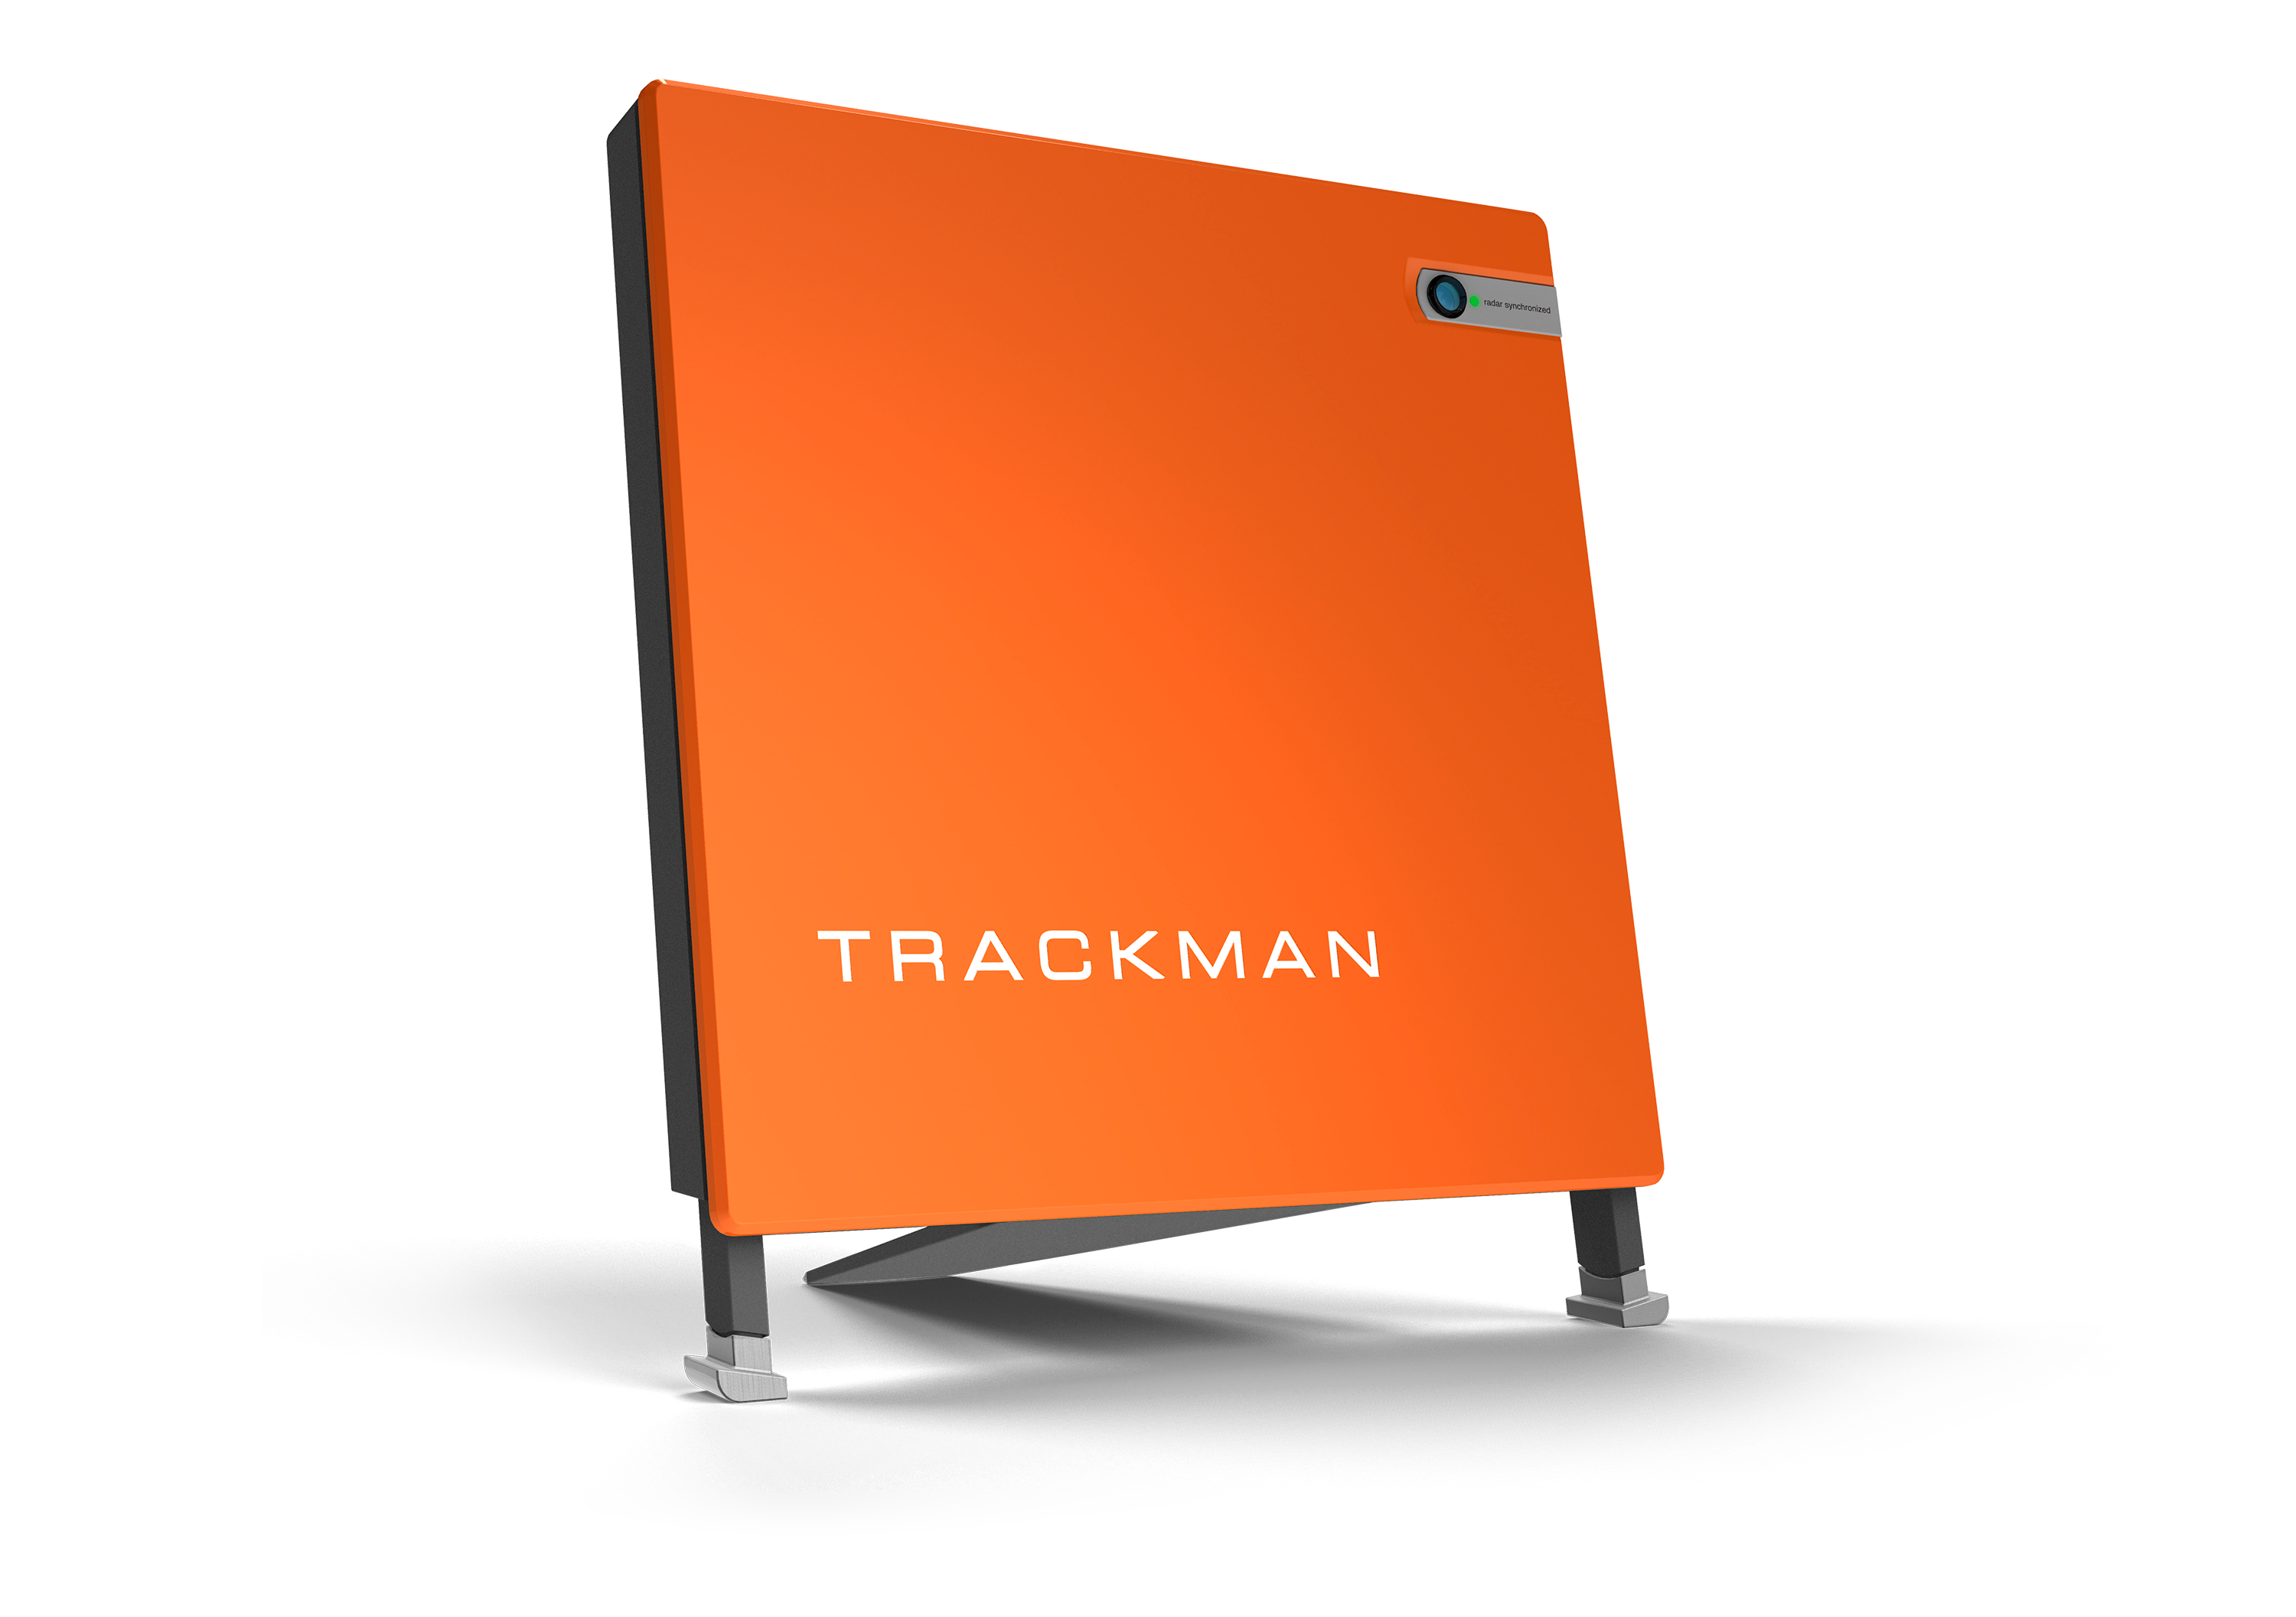 1 hour lesson with Trackman data & video